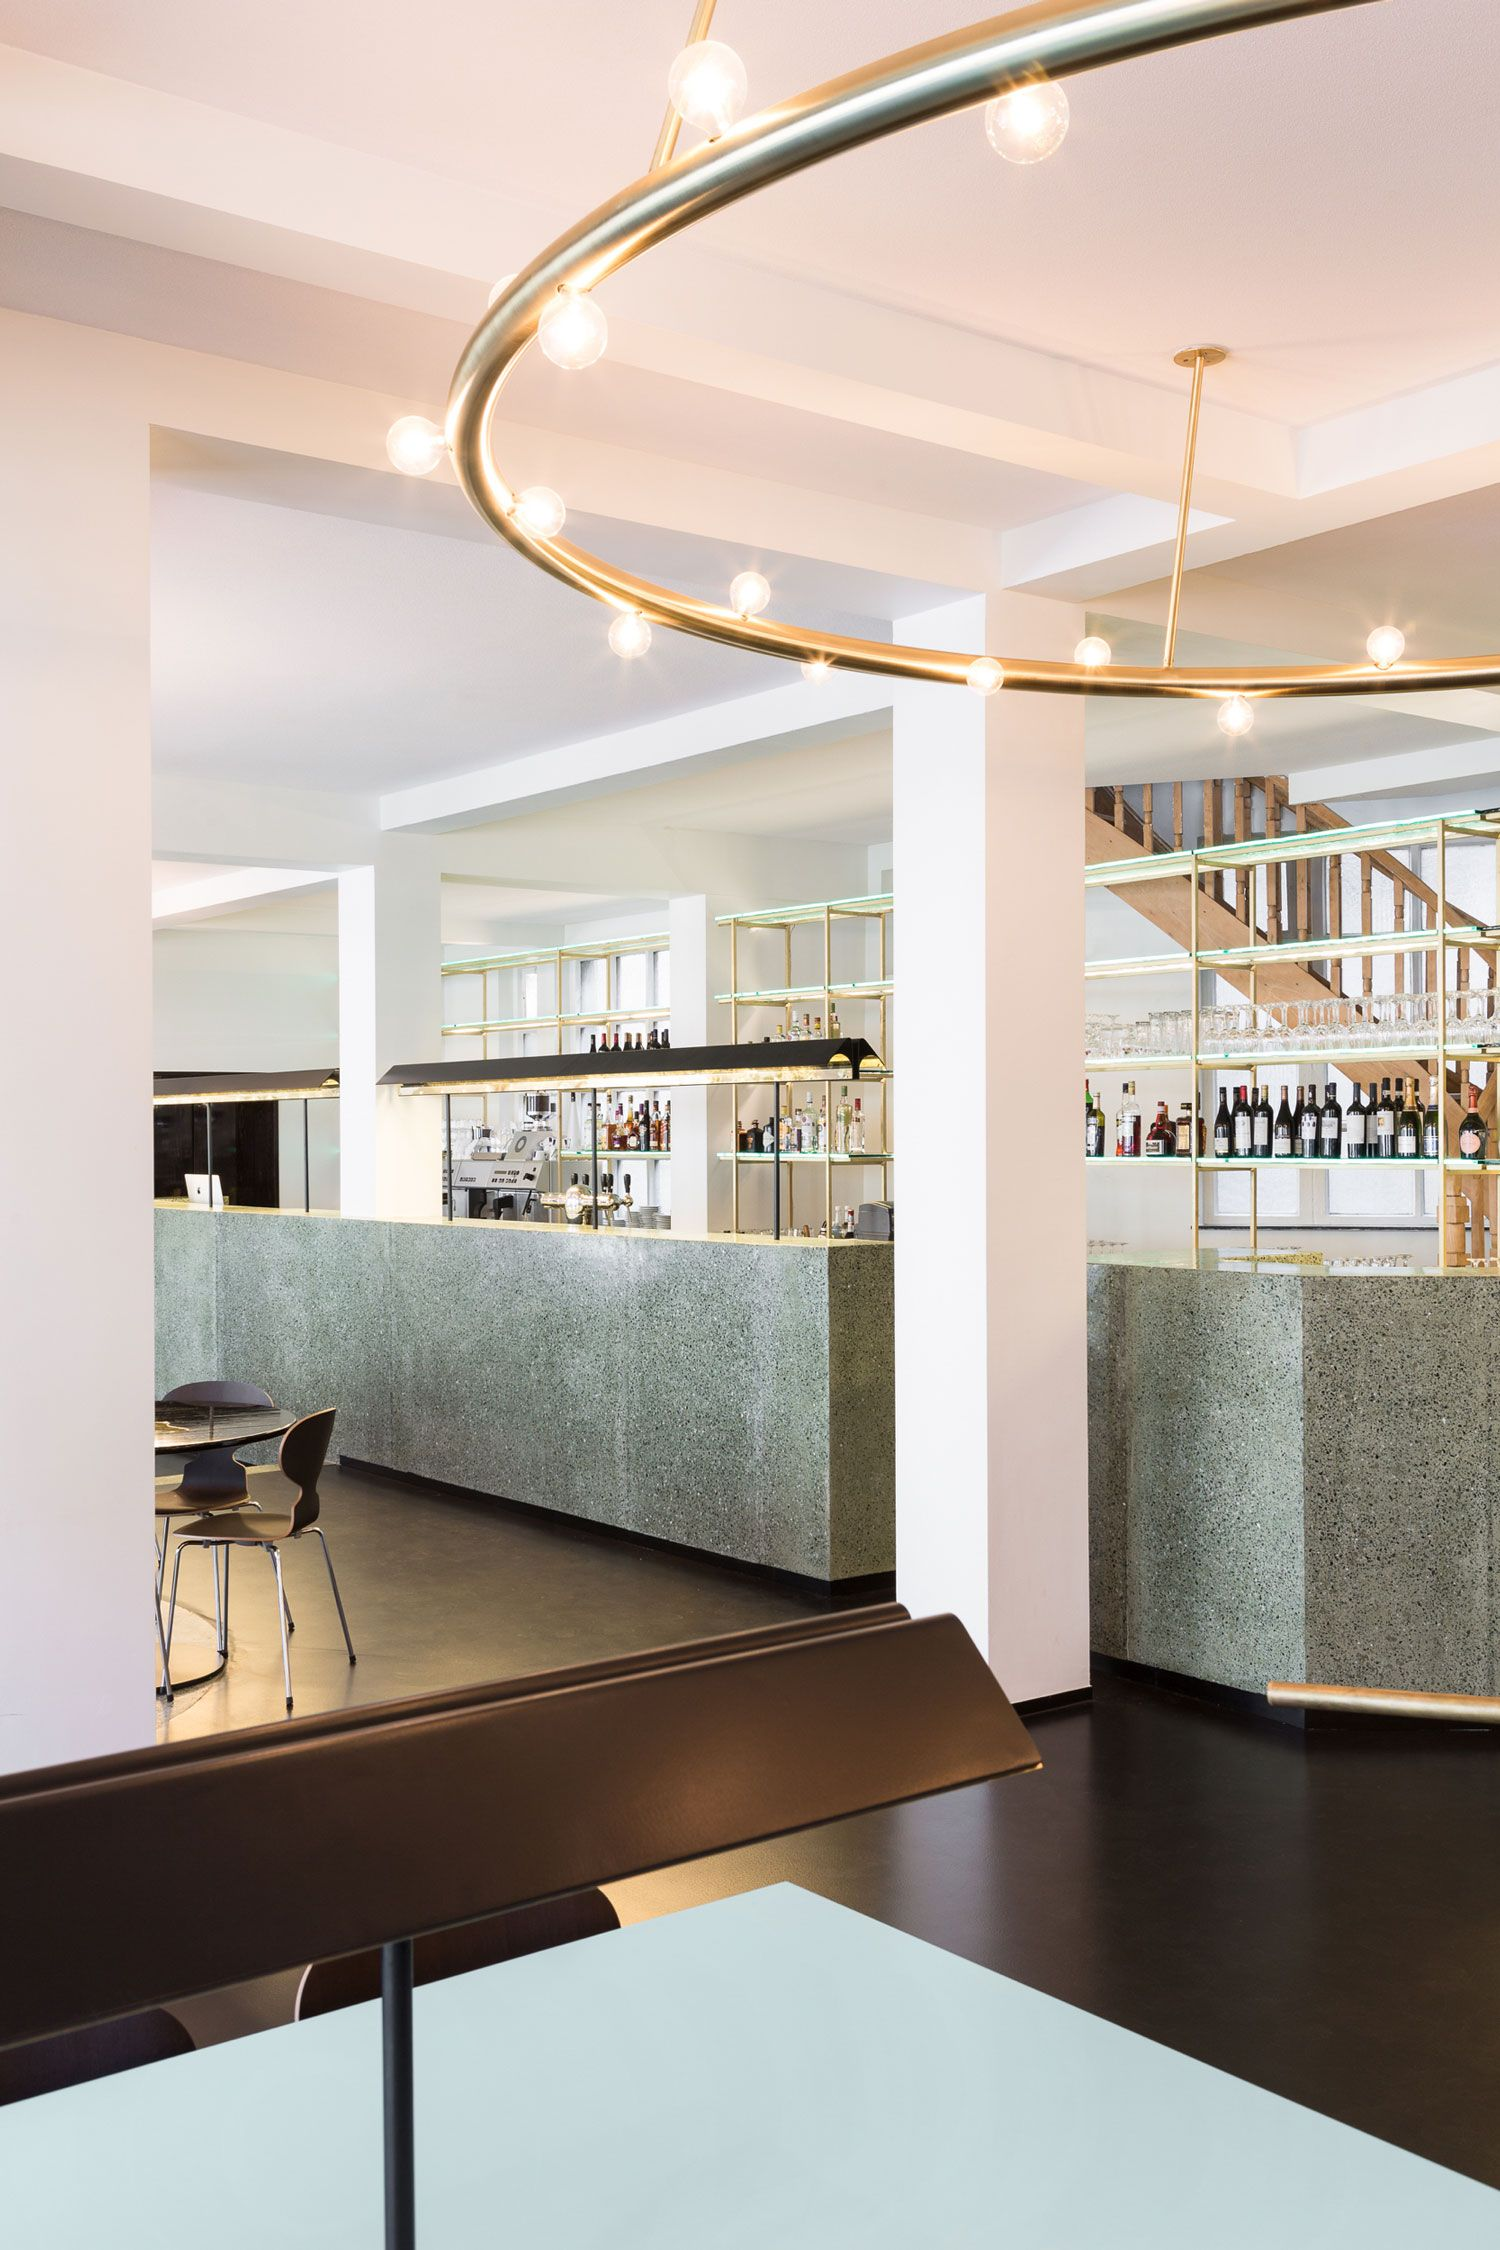 Victoru café brussels by robbrecht and daem brussels restaurants